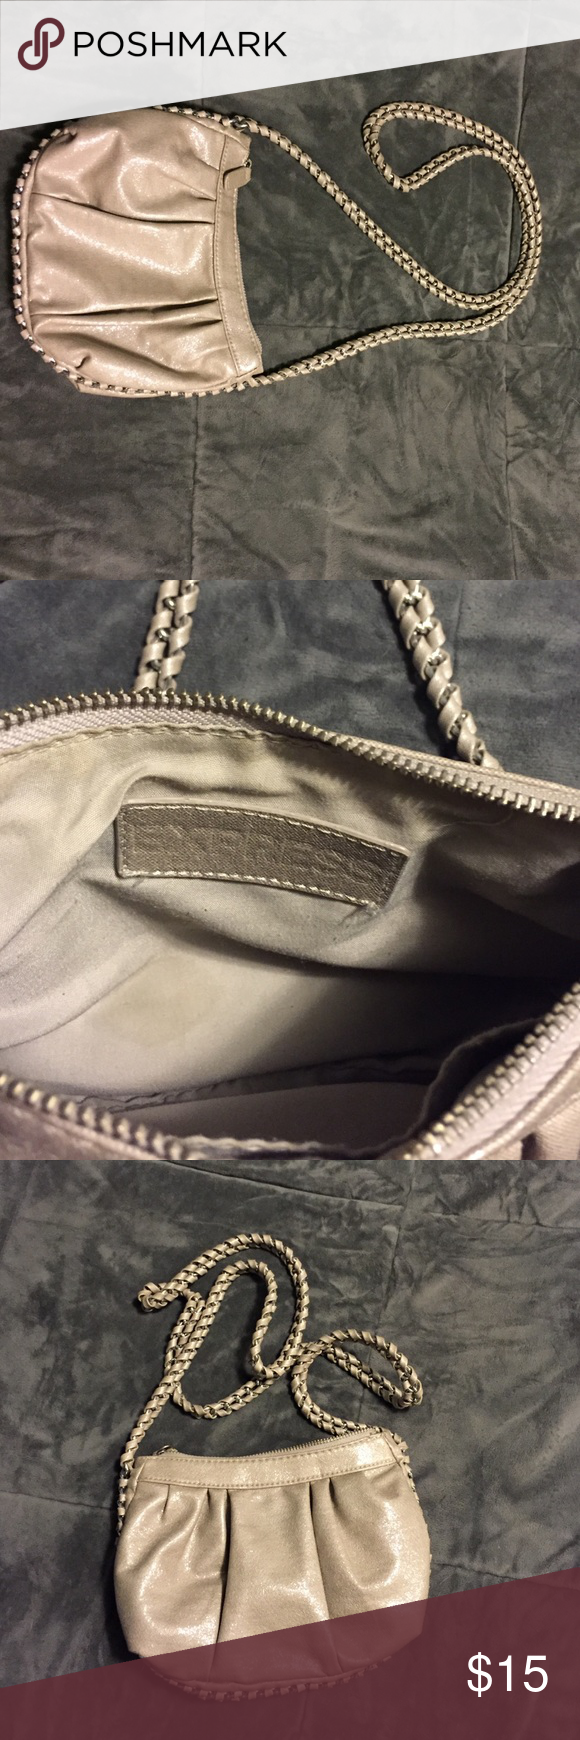 EXPRESS cross-body purse This adorable purse can be worn as a cross-body or shoulder bag. Chain link through the strap . It's a greyish tan with a shimmer. Small stain on the inside ( second picture) Express Bags Crossbody Bags